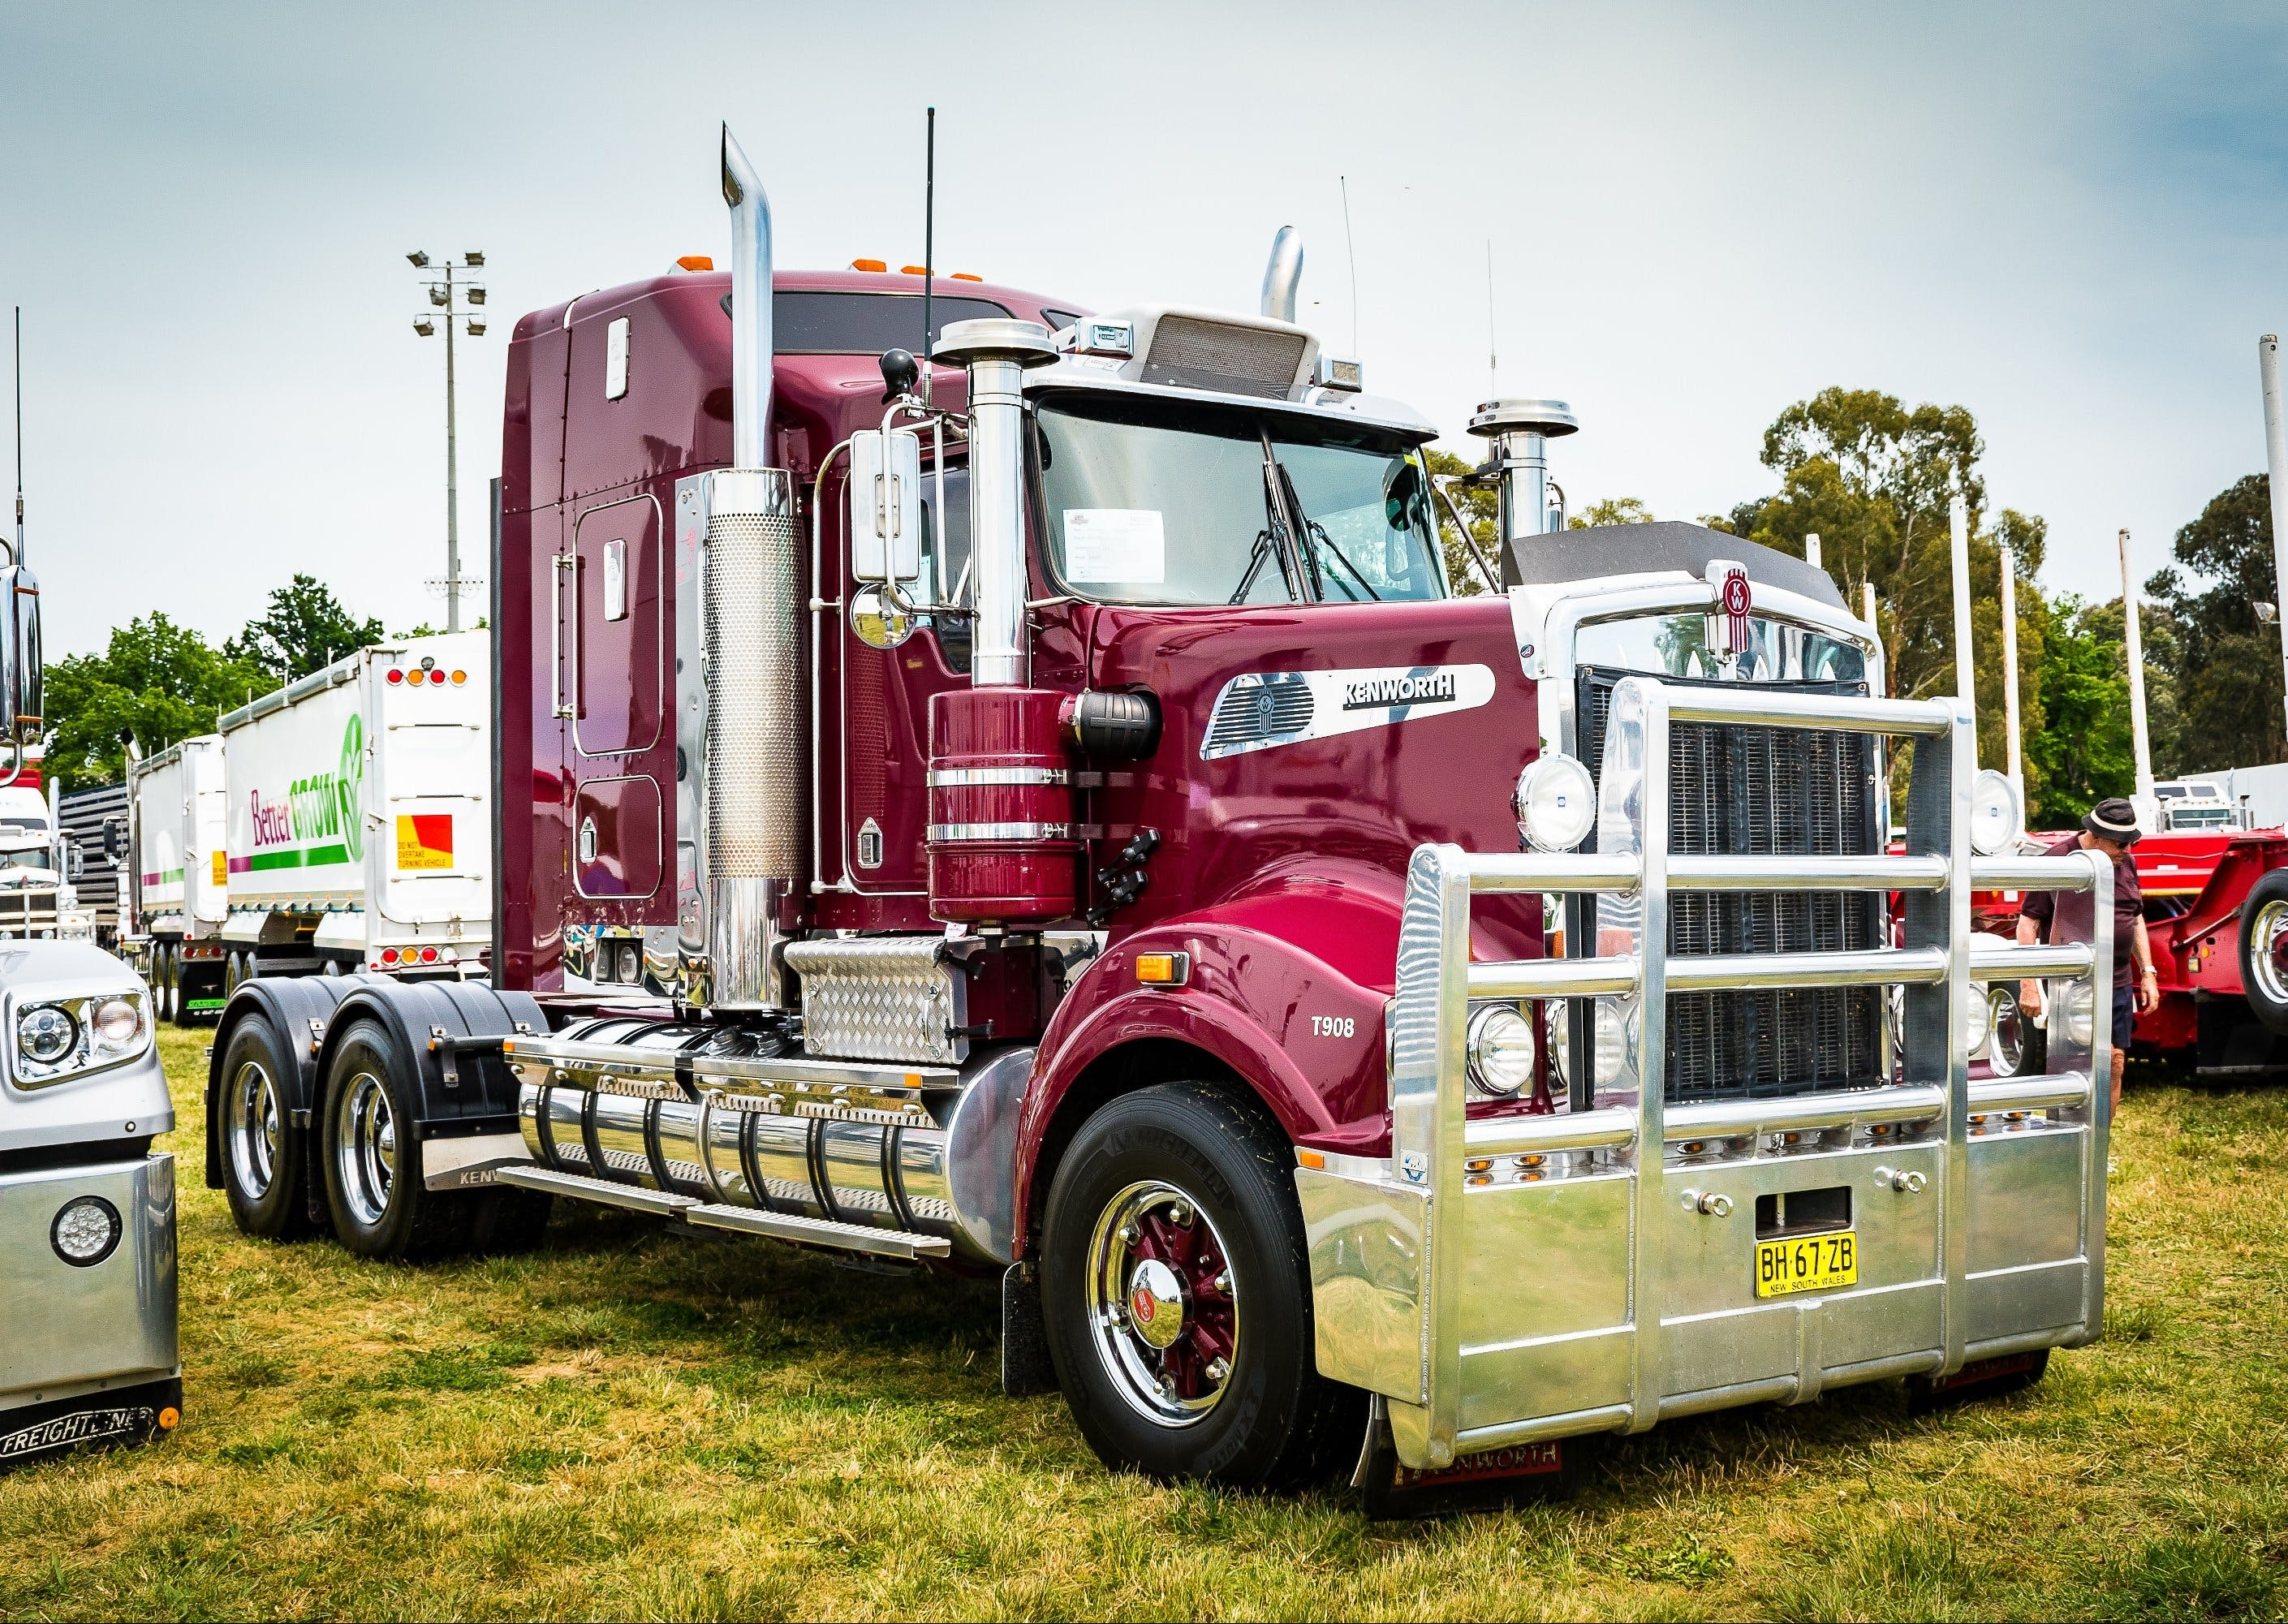 Dane Ballinger Memorial Truck Show - Tourism Gold Coast